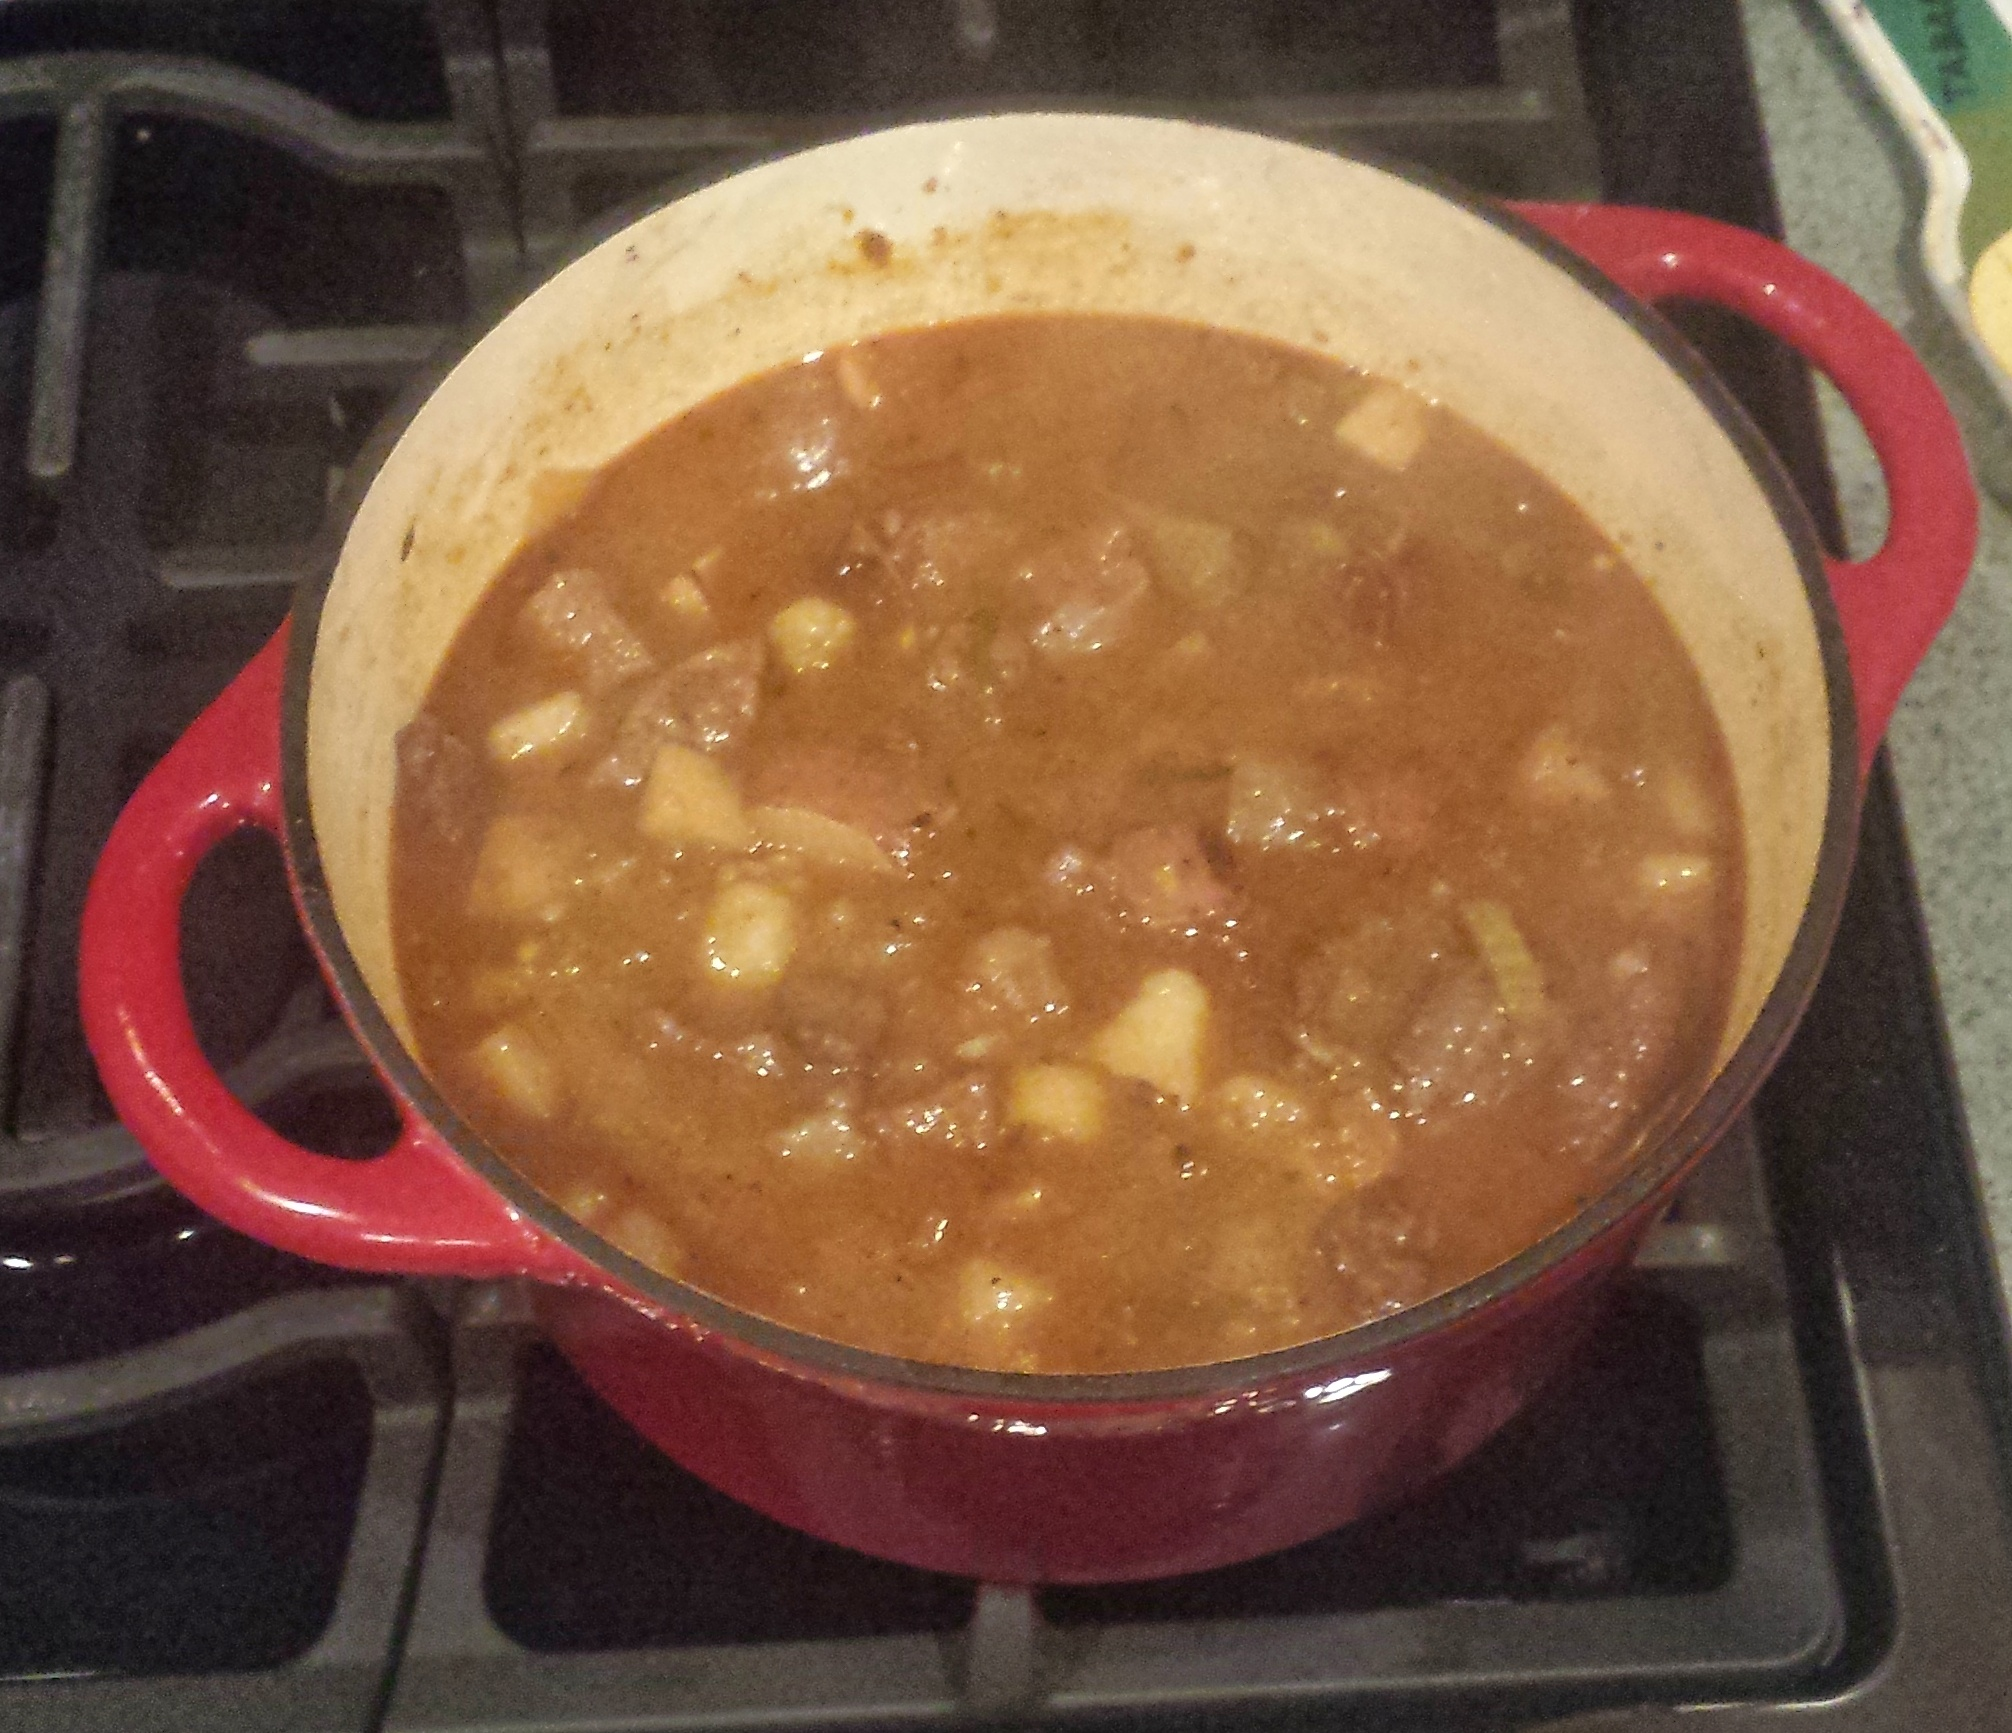 Our Sunday Beef Stew